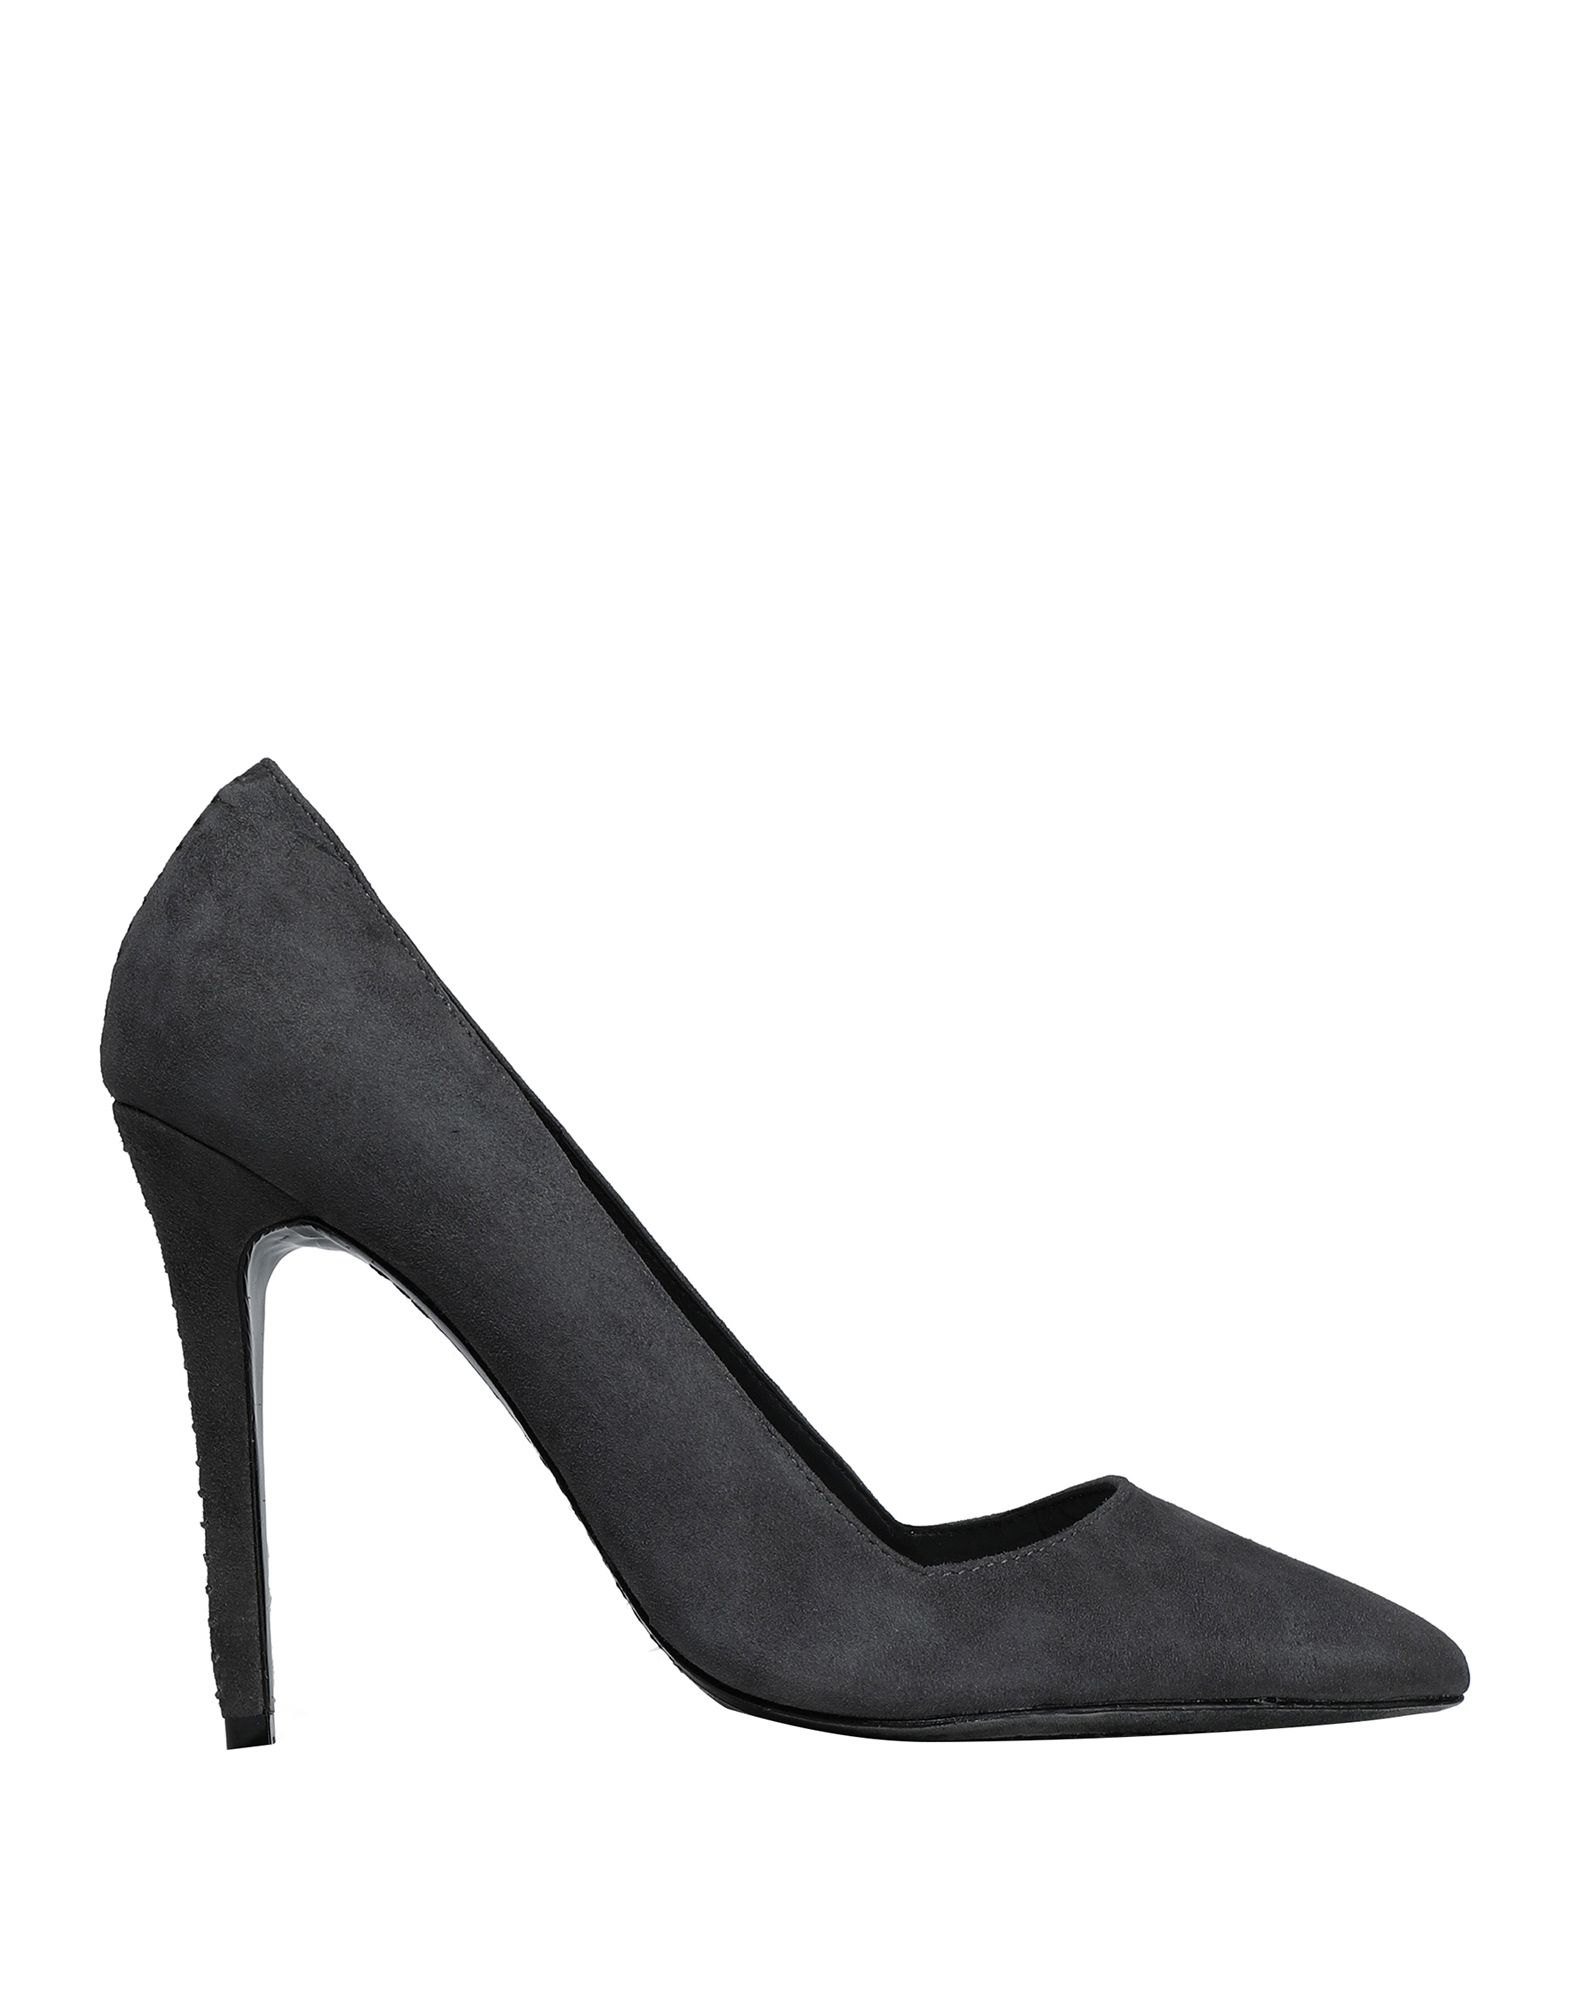 ALICE + OLIVIA Pumps. suede effect, no appliqués, solid color, narrow toeline, spike heel, covered heel, leather lining, leather sole, contains non-textile parts of animal origin. Soft Leather